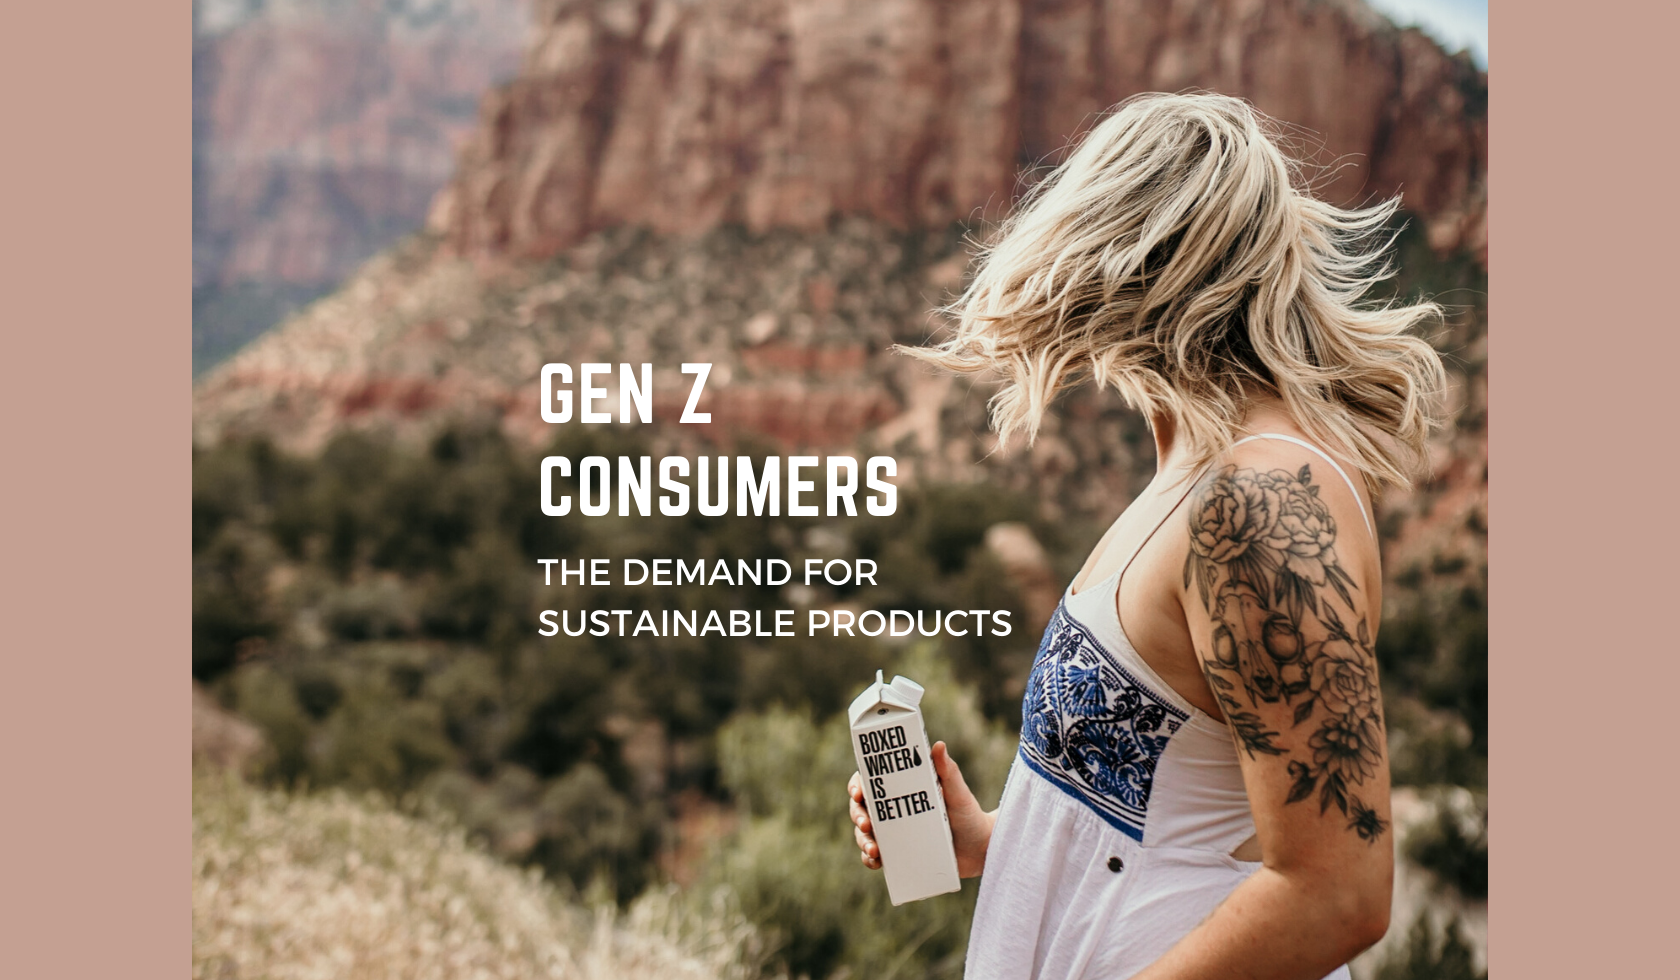 Gen Z consumers want sustainable products